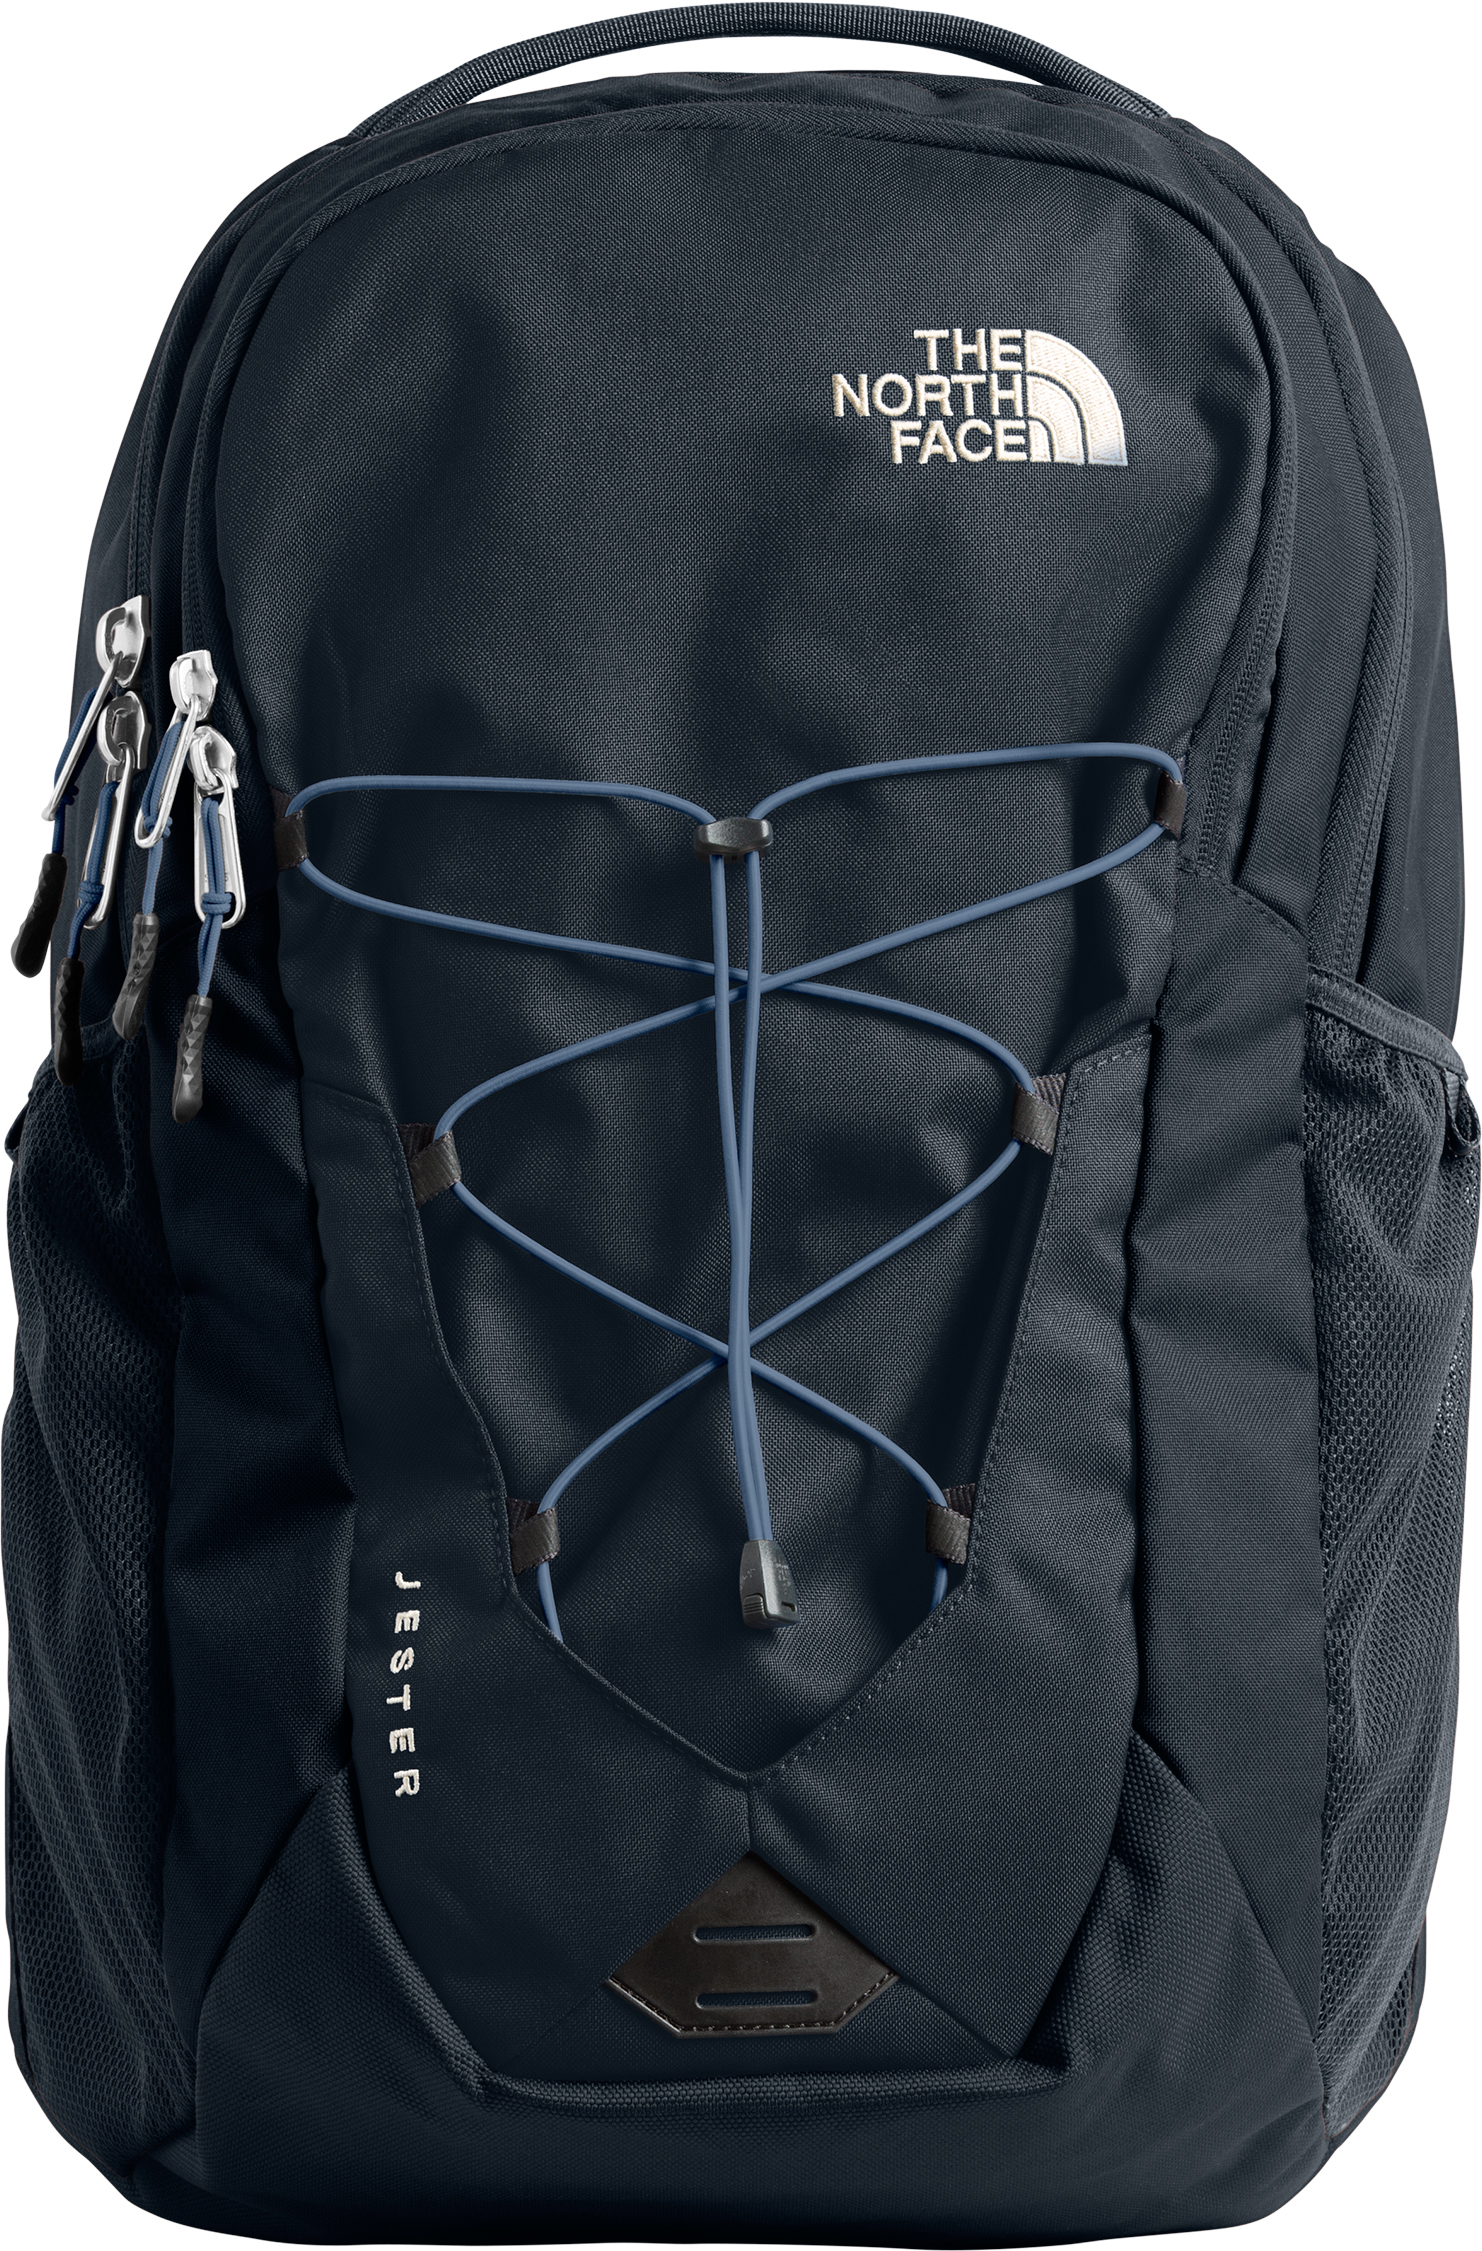 867b519b7 The North Face Jester Daypack - Unisex